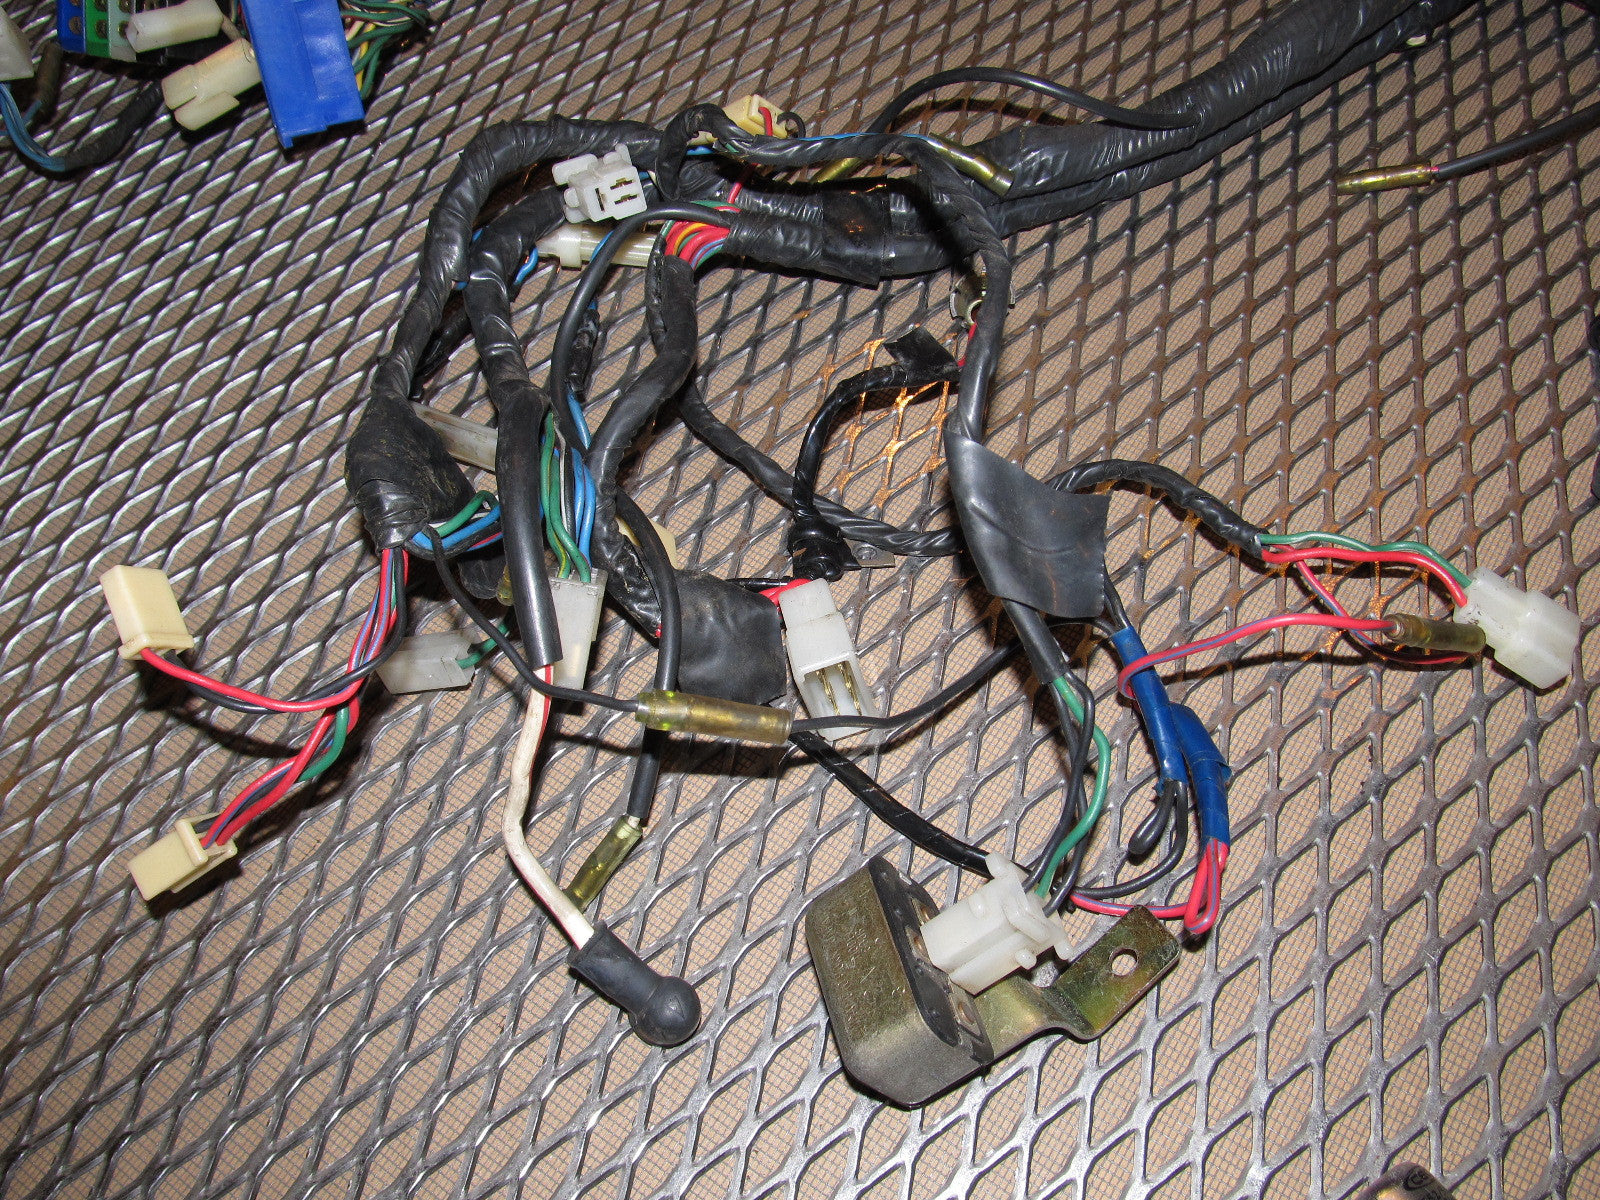 IMG_5228_88526e6a b786 49dc 983b 611c0d77fe05?v=1464826369 72 73 datsun 240z oem dash wiring harness autopartone com  at couponss.co